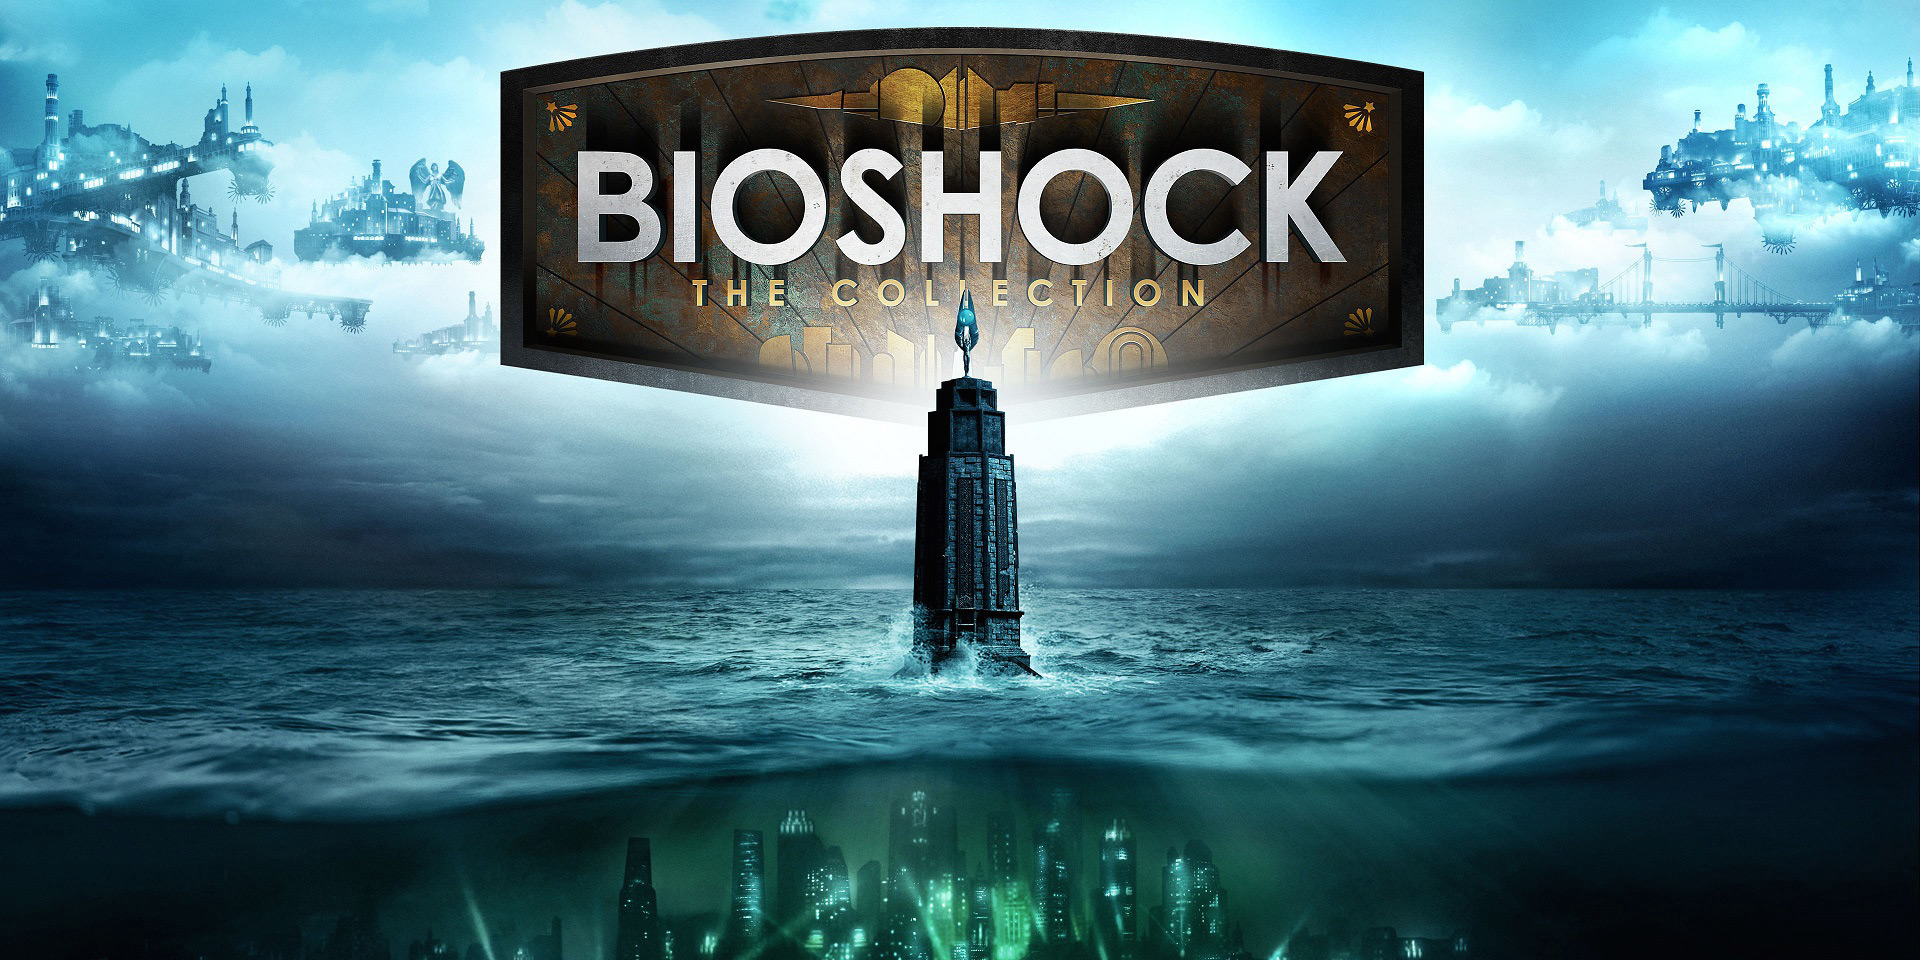 PS4 digital game sale from $4.50 or less: BioShock, Red Dead Revolver, Dishonored, more